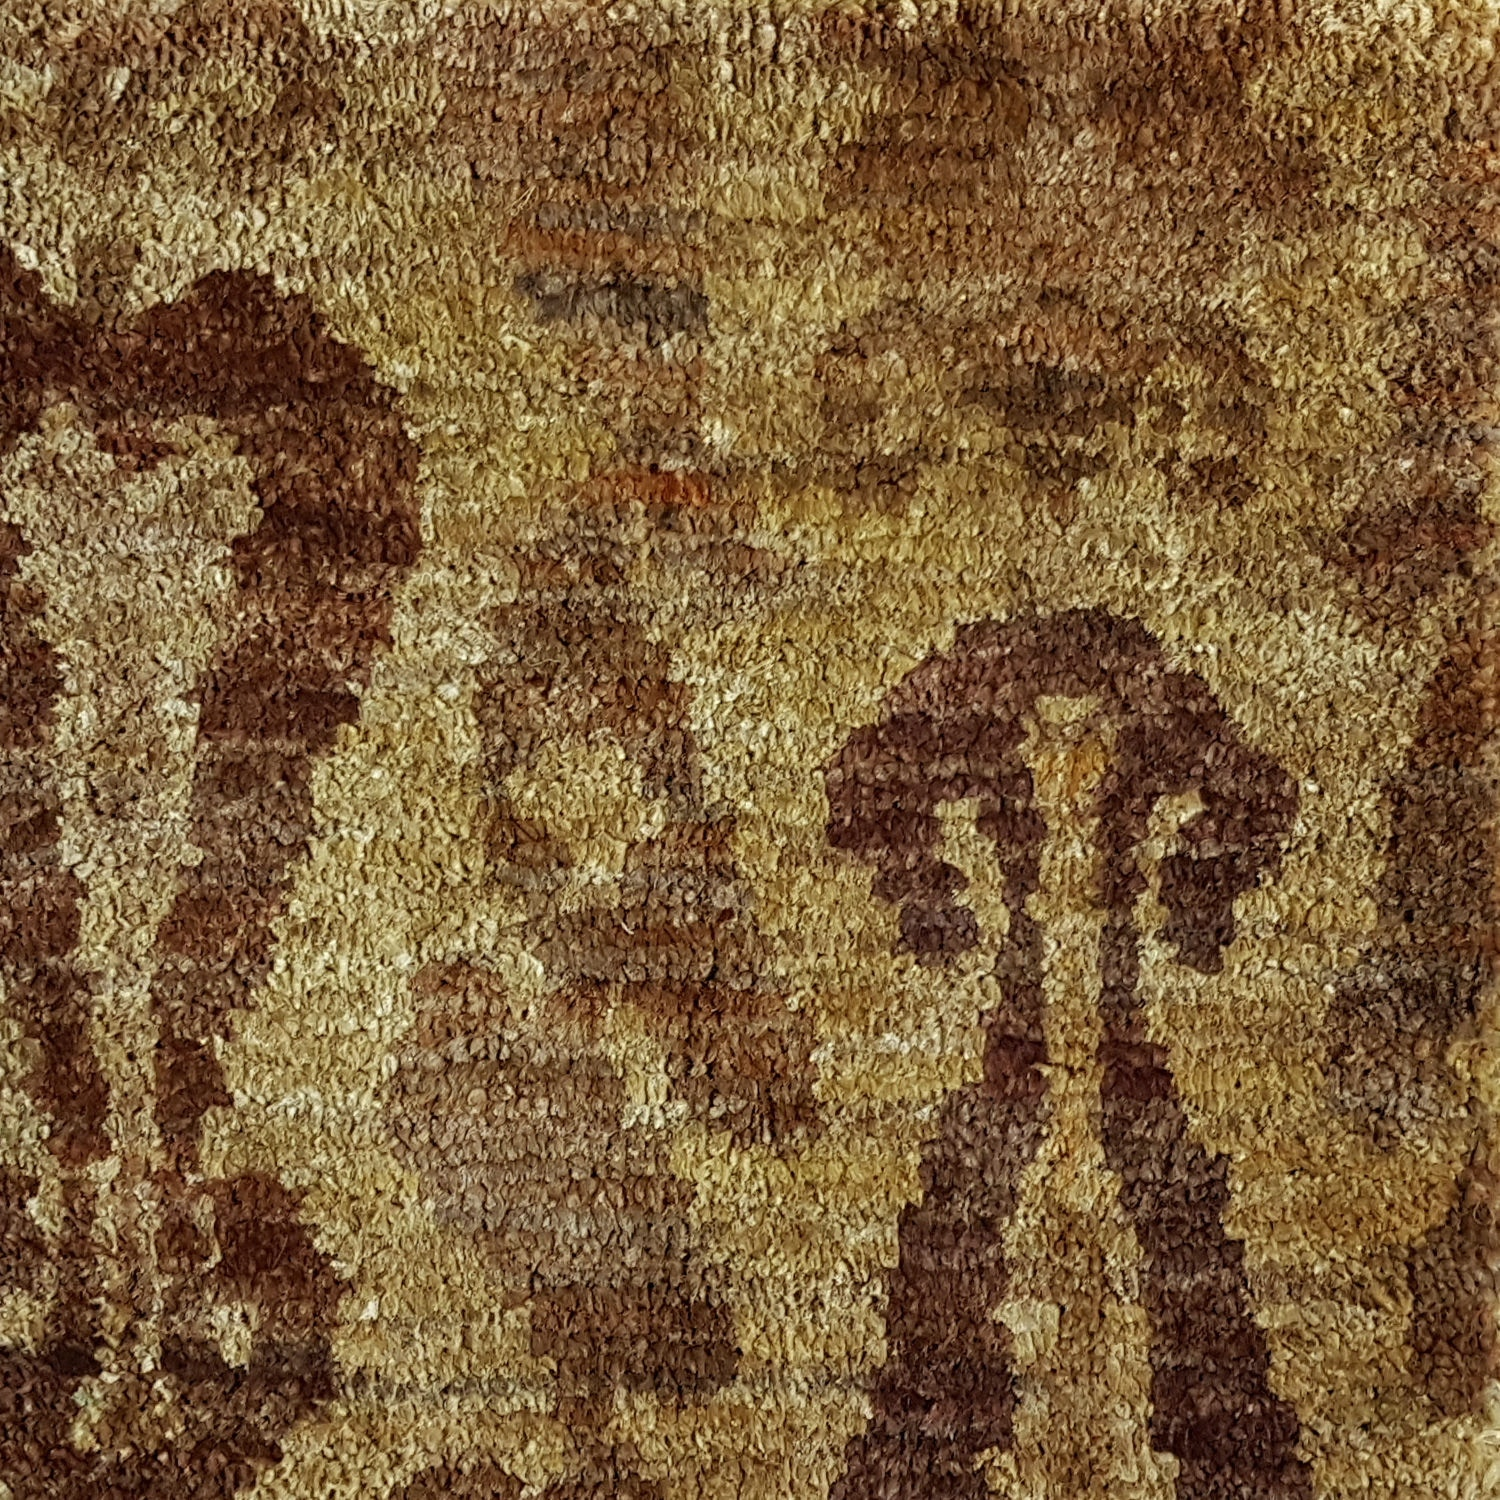 Brunschwig Carpet V2-211/Sp.Gold Brown CB-102115.GOLD BROWN.0